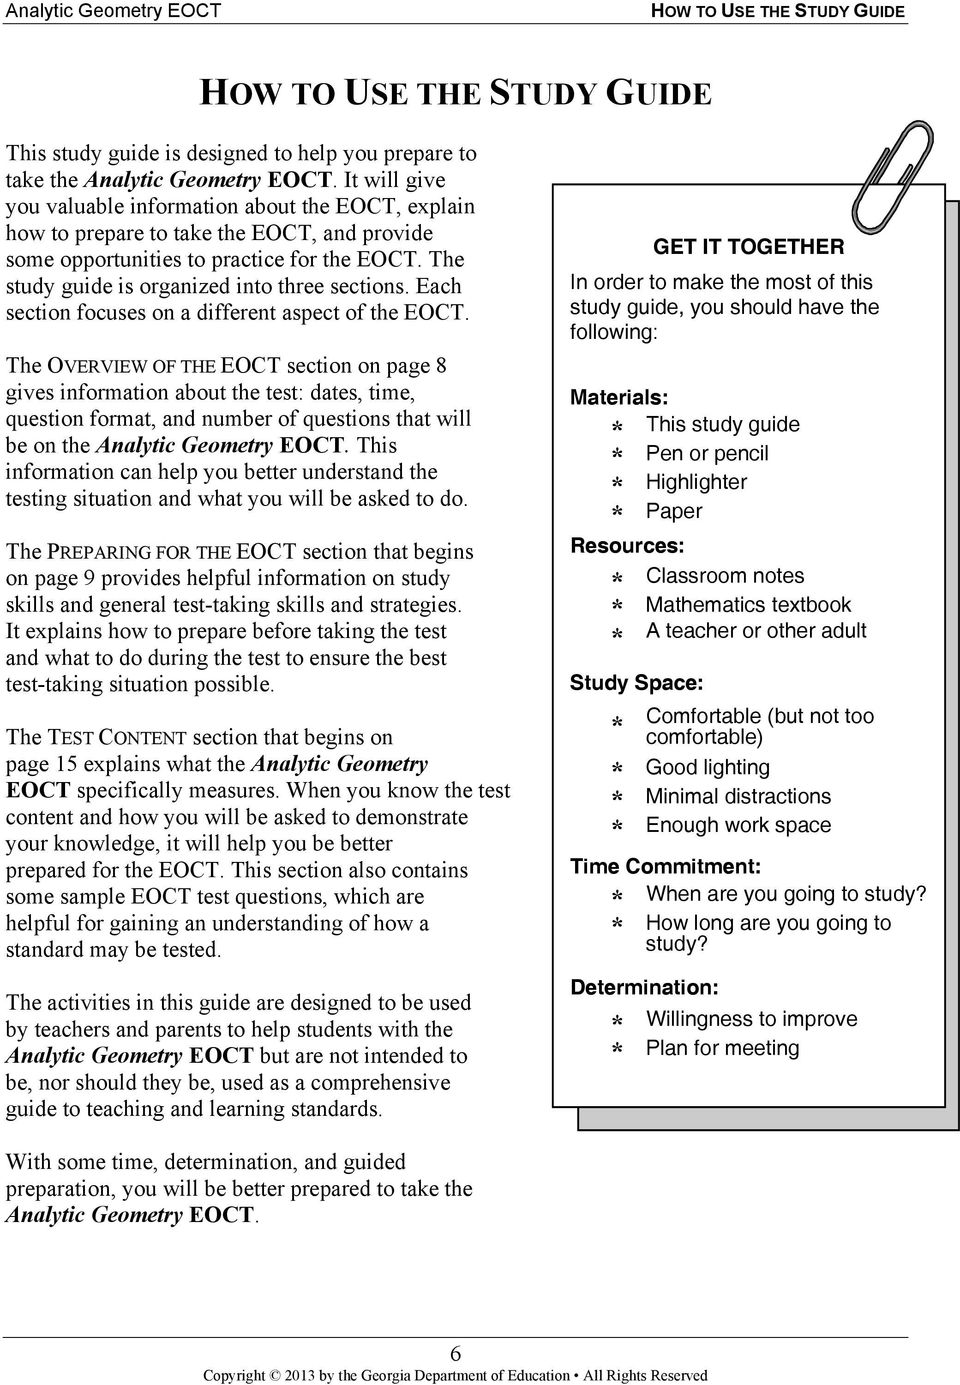 analytic geometry study guide georgia end of course tests pdf rh docplayer net Fraction Study Guide Fraction Study Guide